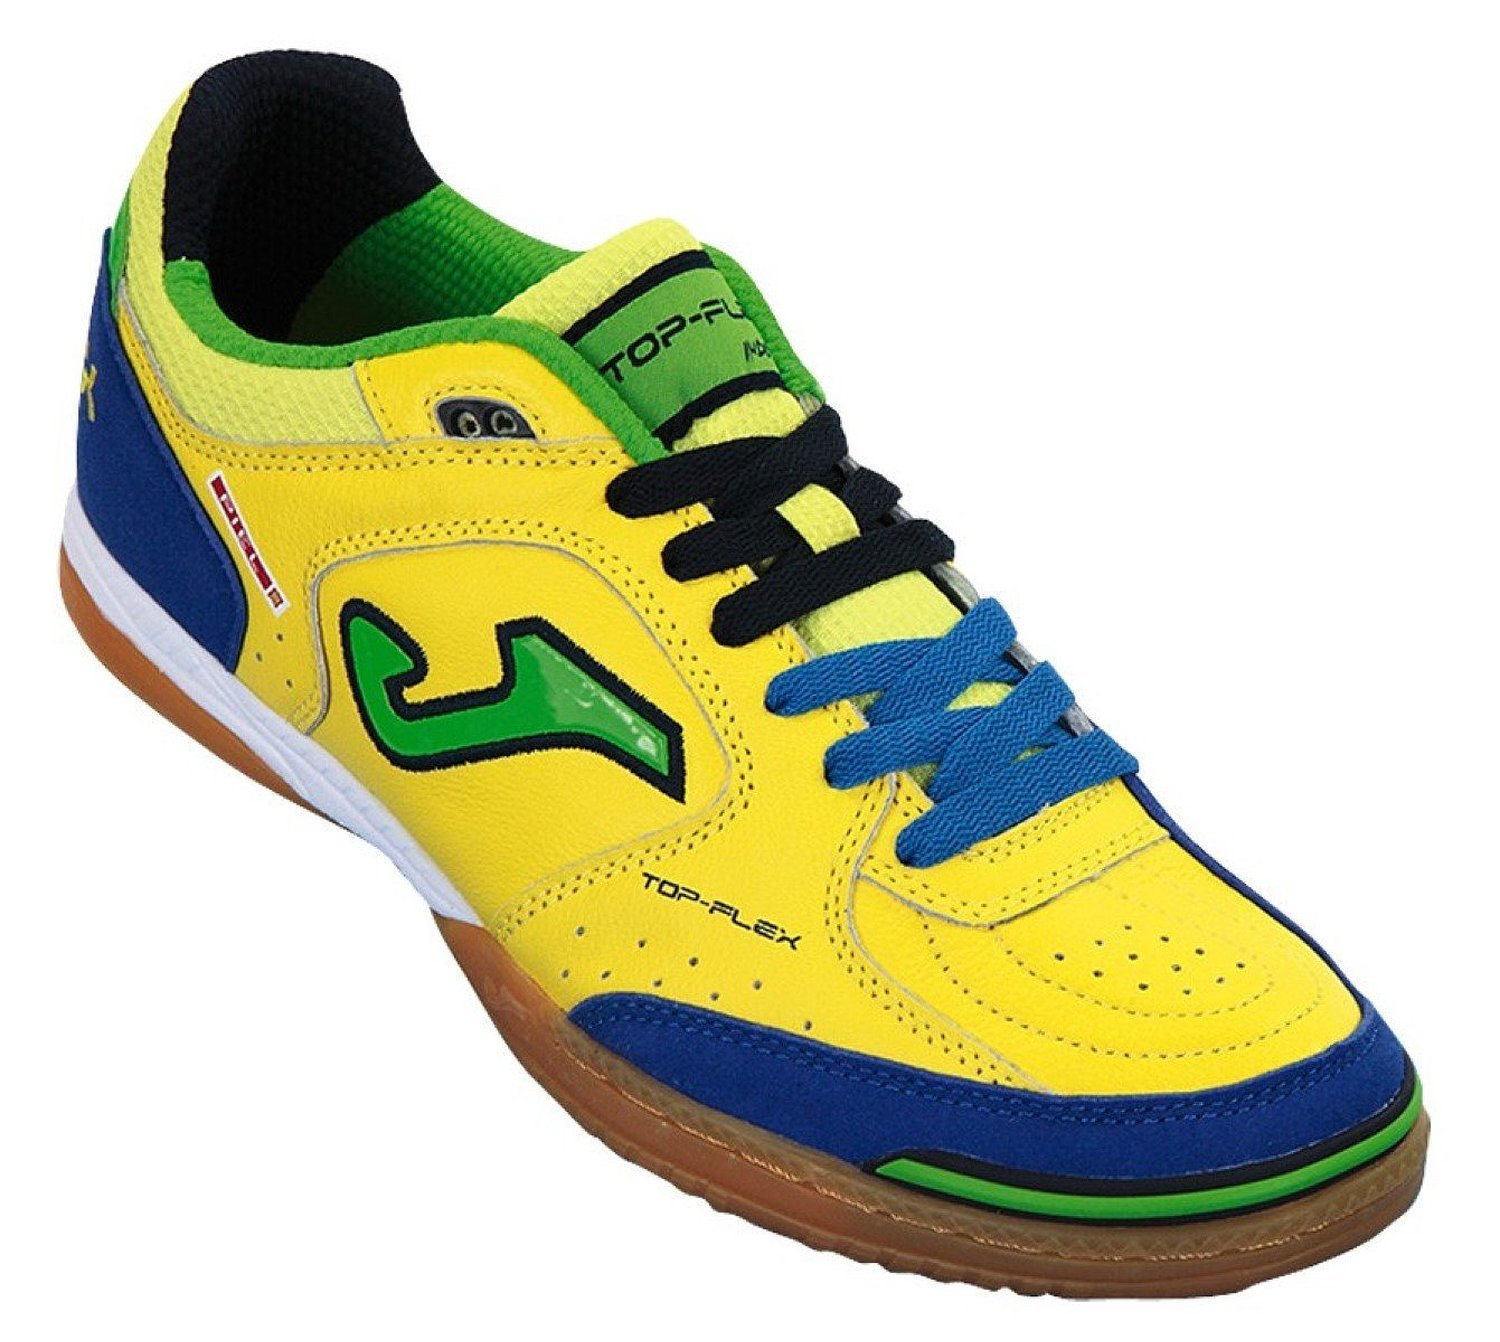 Scarpe da calcetto JOMA TOP FLEX 404 ROYAL-FLUOR TURF